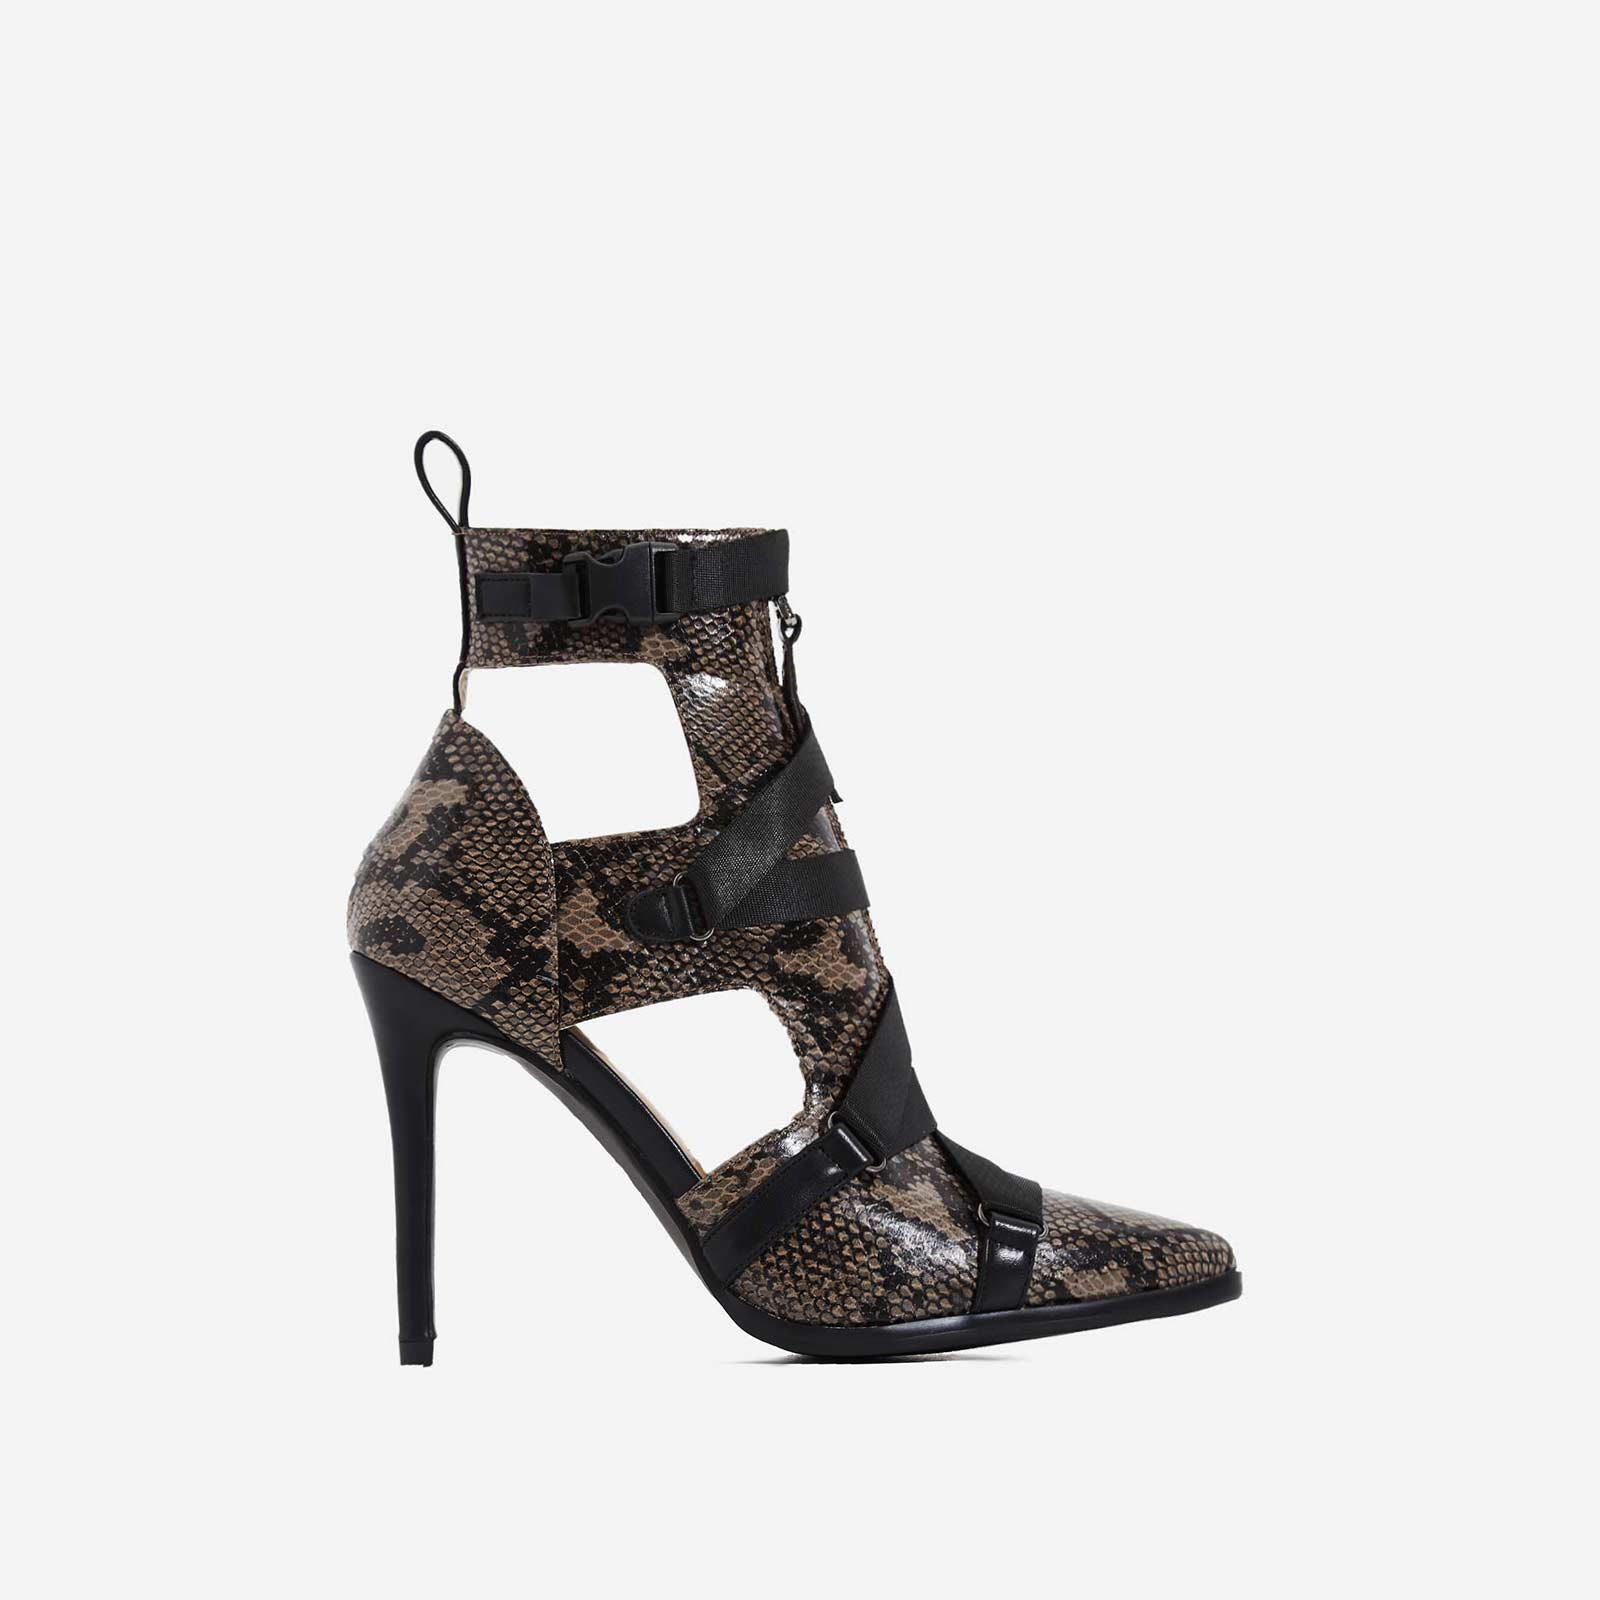 Alessia Strap Detail Ankle Boot In Brown Snake Print Faux Leather